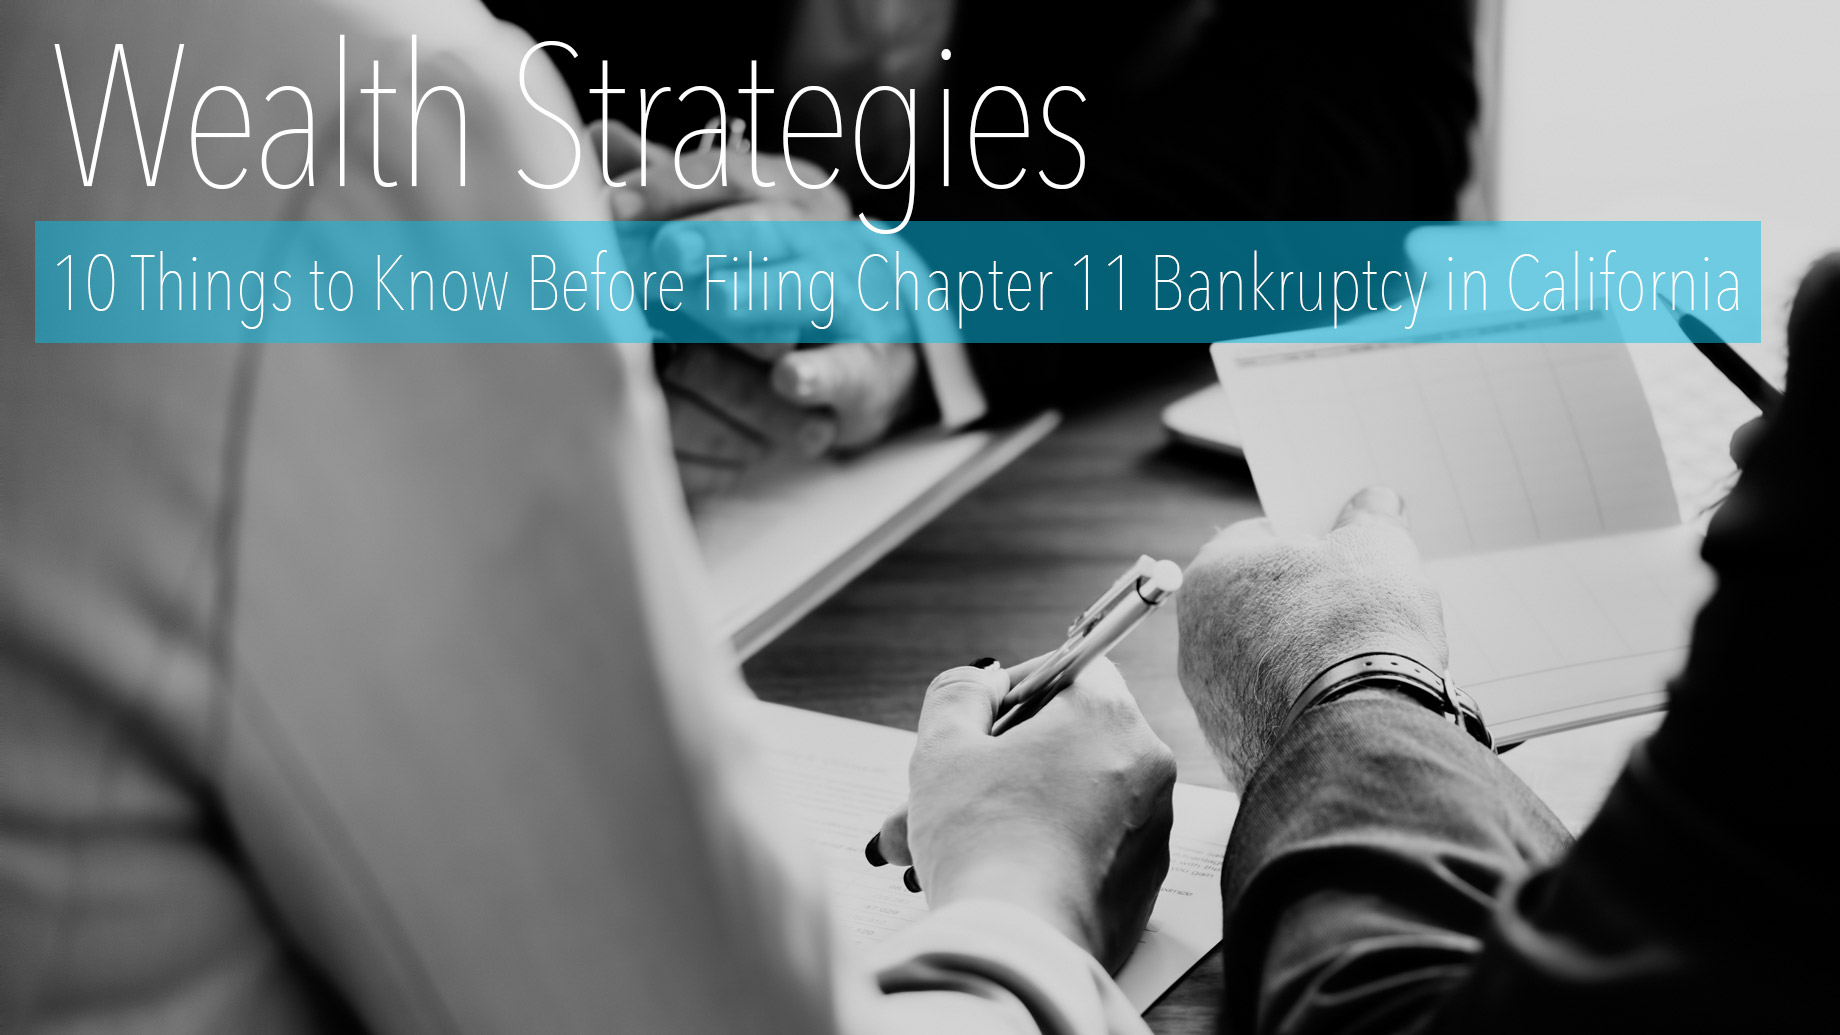 Wealth Strategies - 10 Things to Know Before Filing Chapter 11 Bankruptcy in California